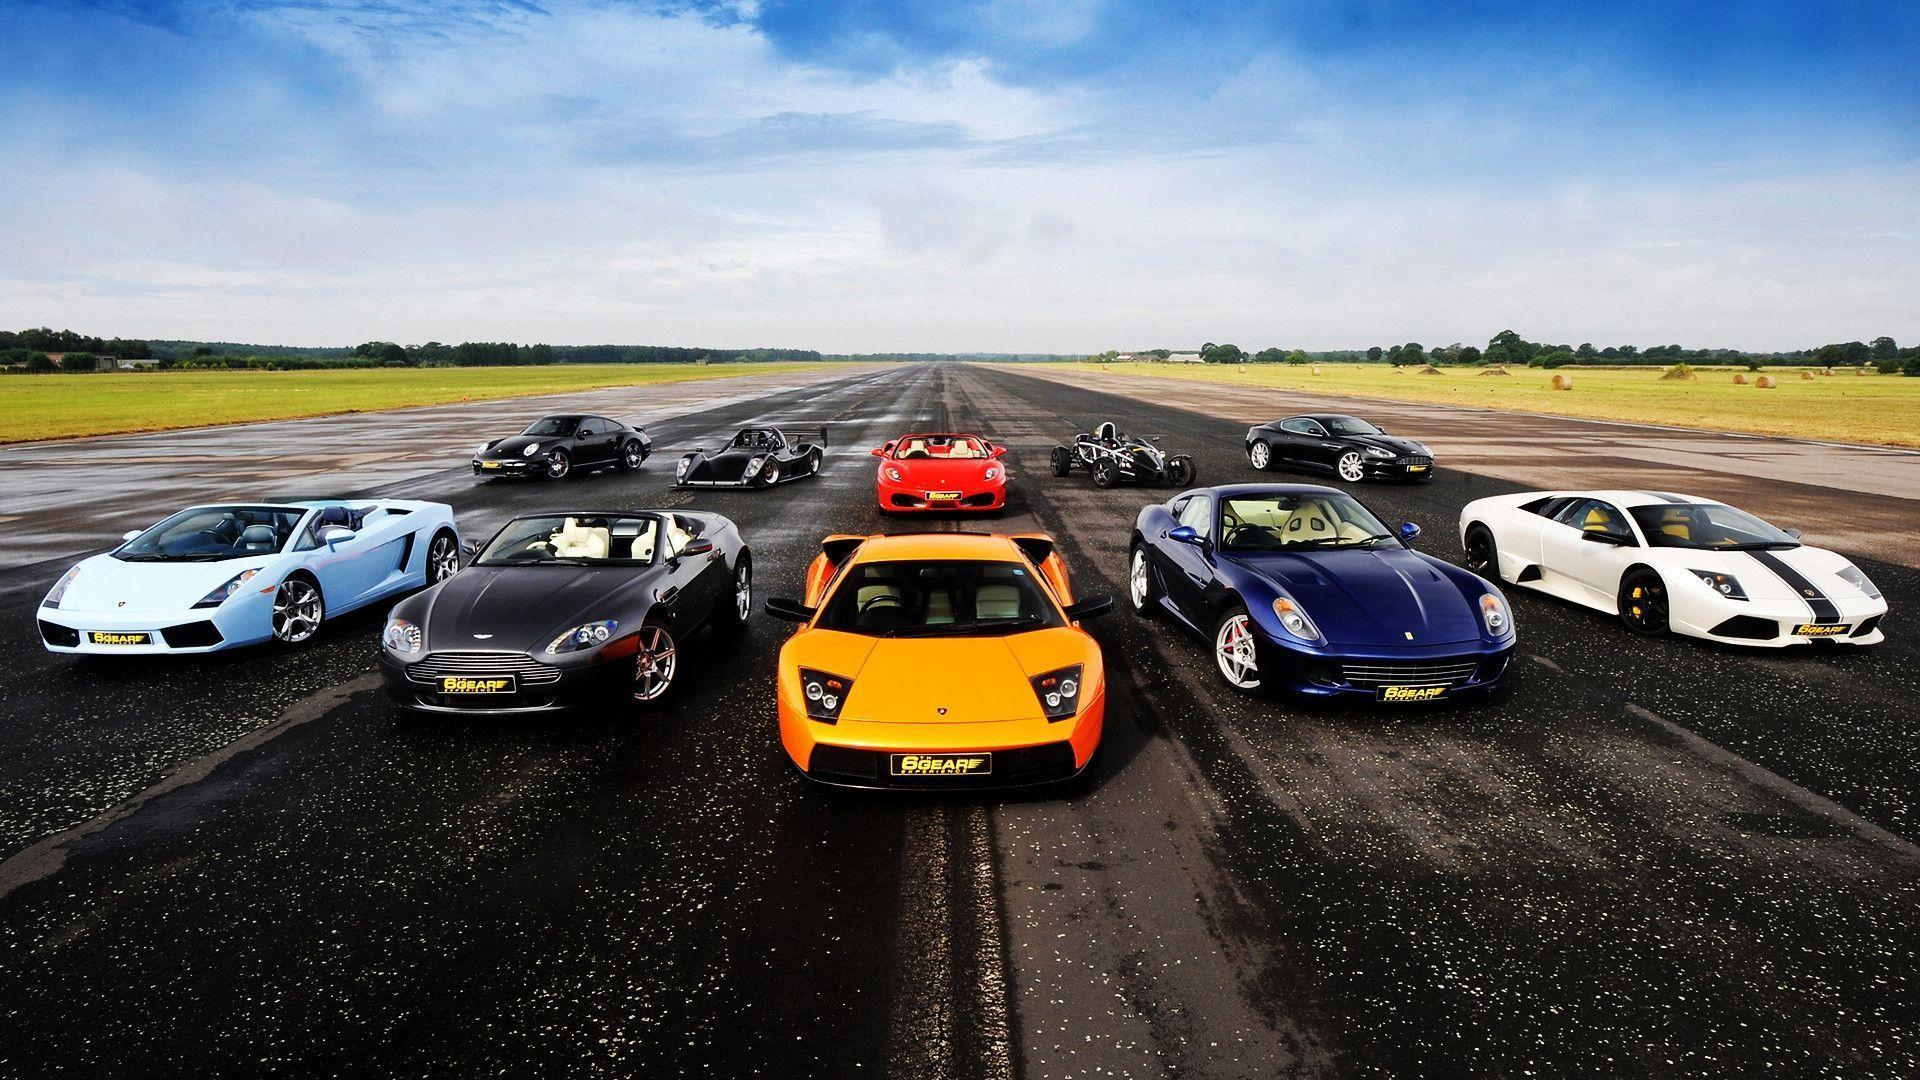 Supercars Wallpapers #7016 | Hdwidescreens.